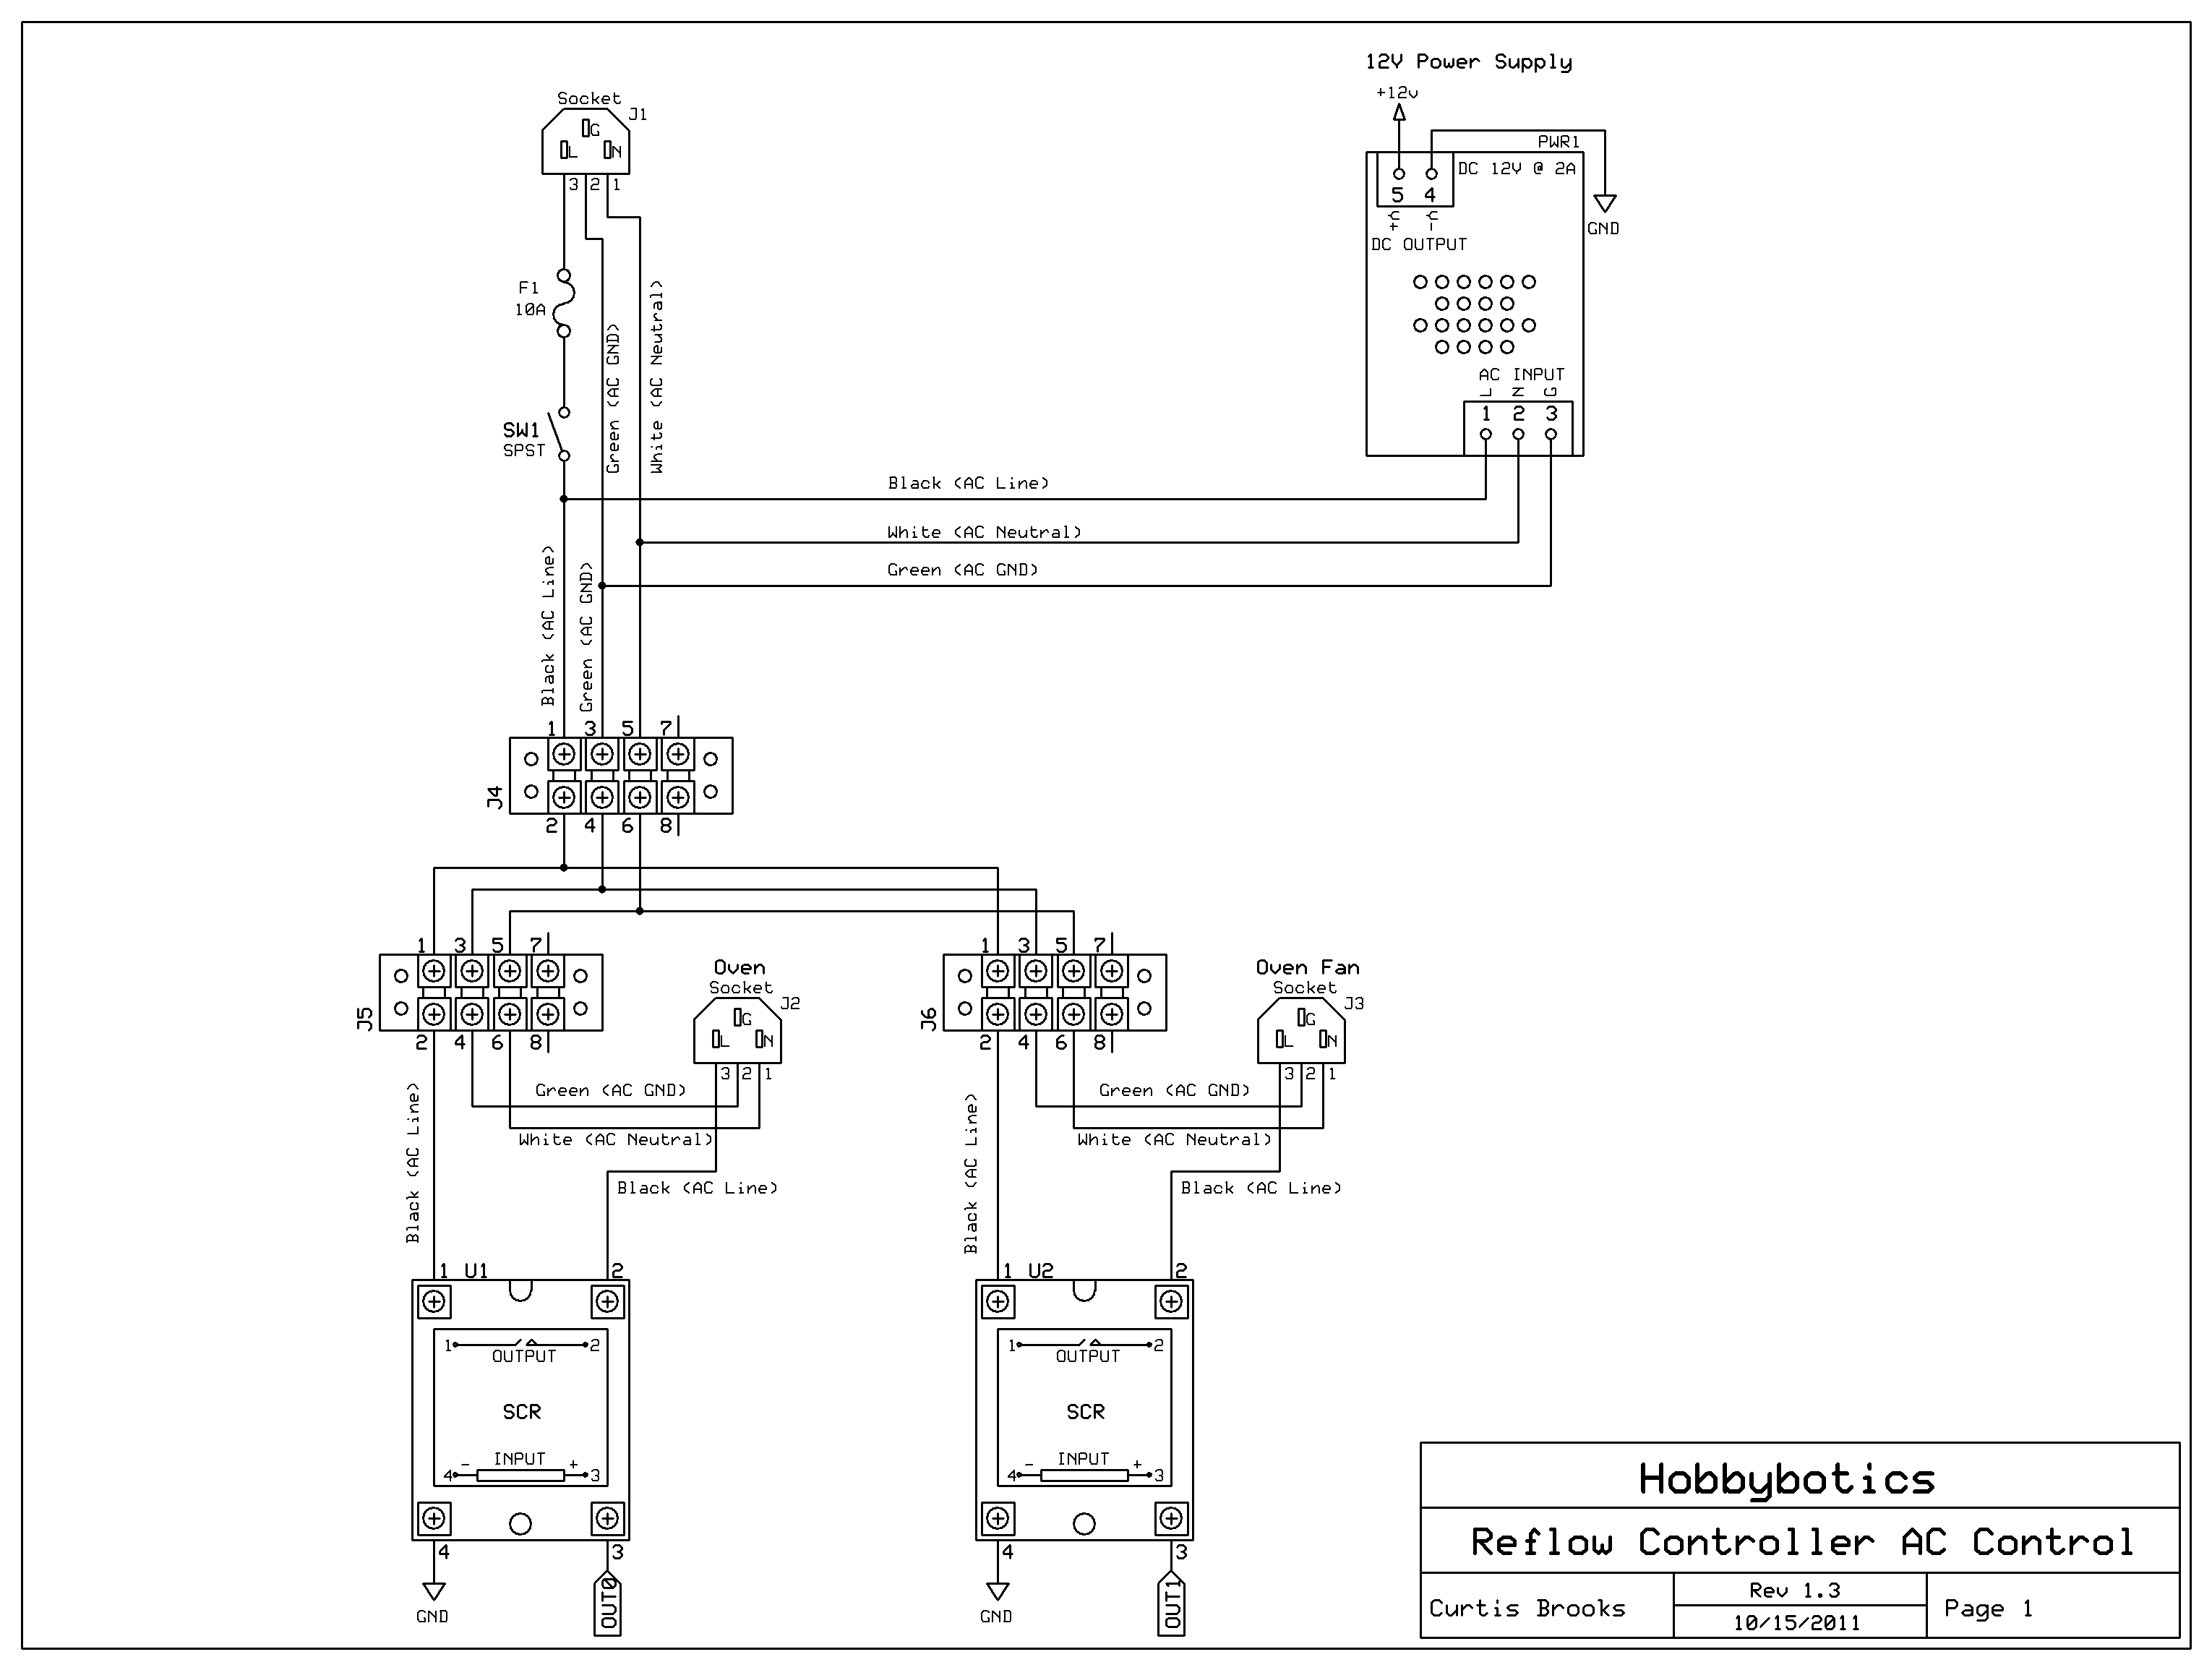 heating wiring diagram with Hobbybotics Reflow Controller V8 03 on Electrical Specs For Installing Ductless Mini Splits in addition Saeco Starbucks Sirena Drawing 2 moreover 902628 1954 F100 Heater Box moreover Hobbybotics Reflow Controller V8 03 likewise ElectricCircuitAndCircuitDiagram.